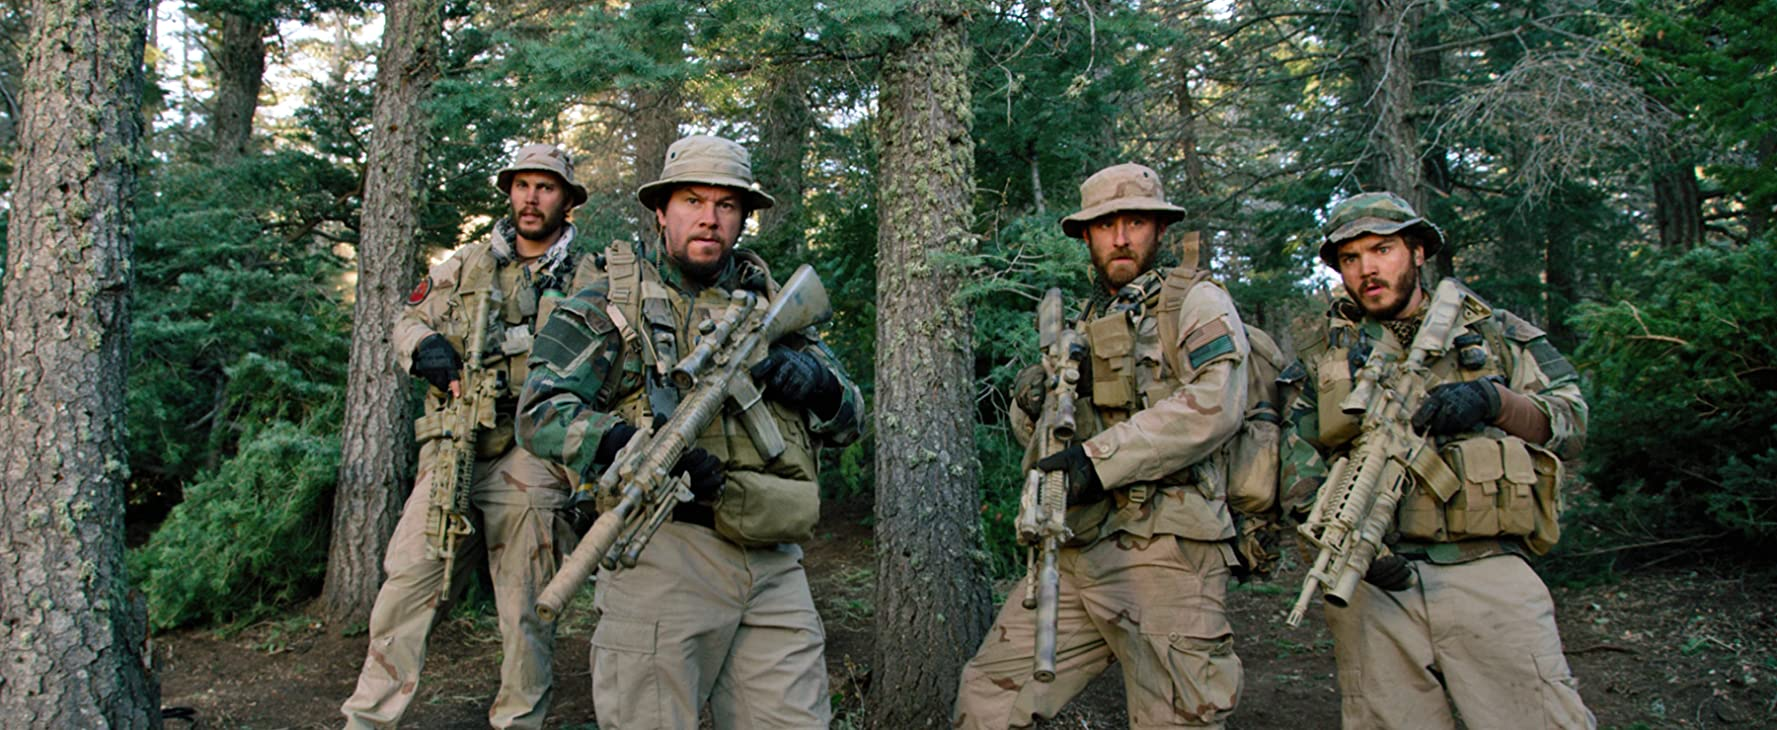 Mark Wahlberg, Ben Foster, Emile Hirsch, and Taylor Kitsch in Lone Survivor (2013)